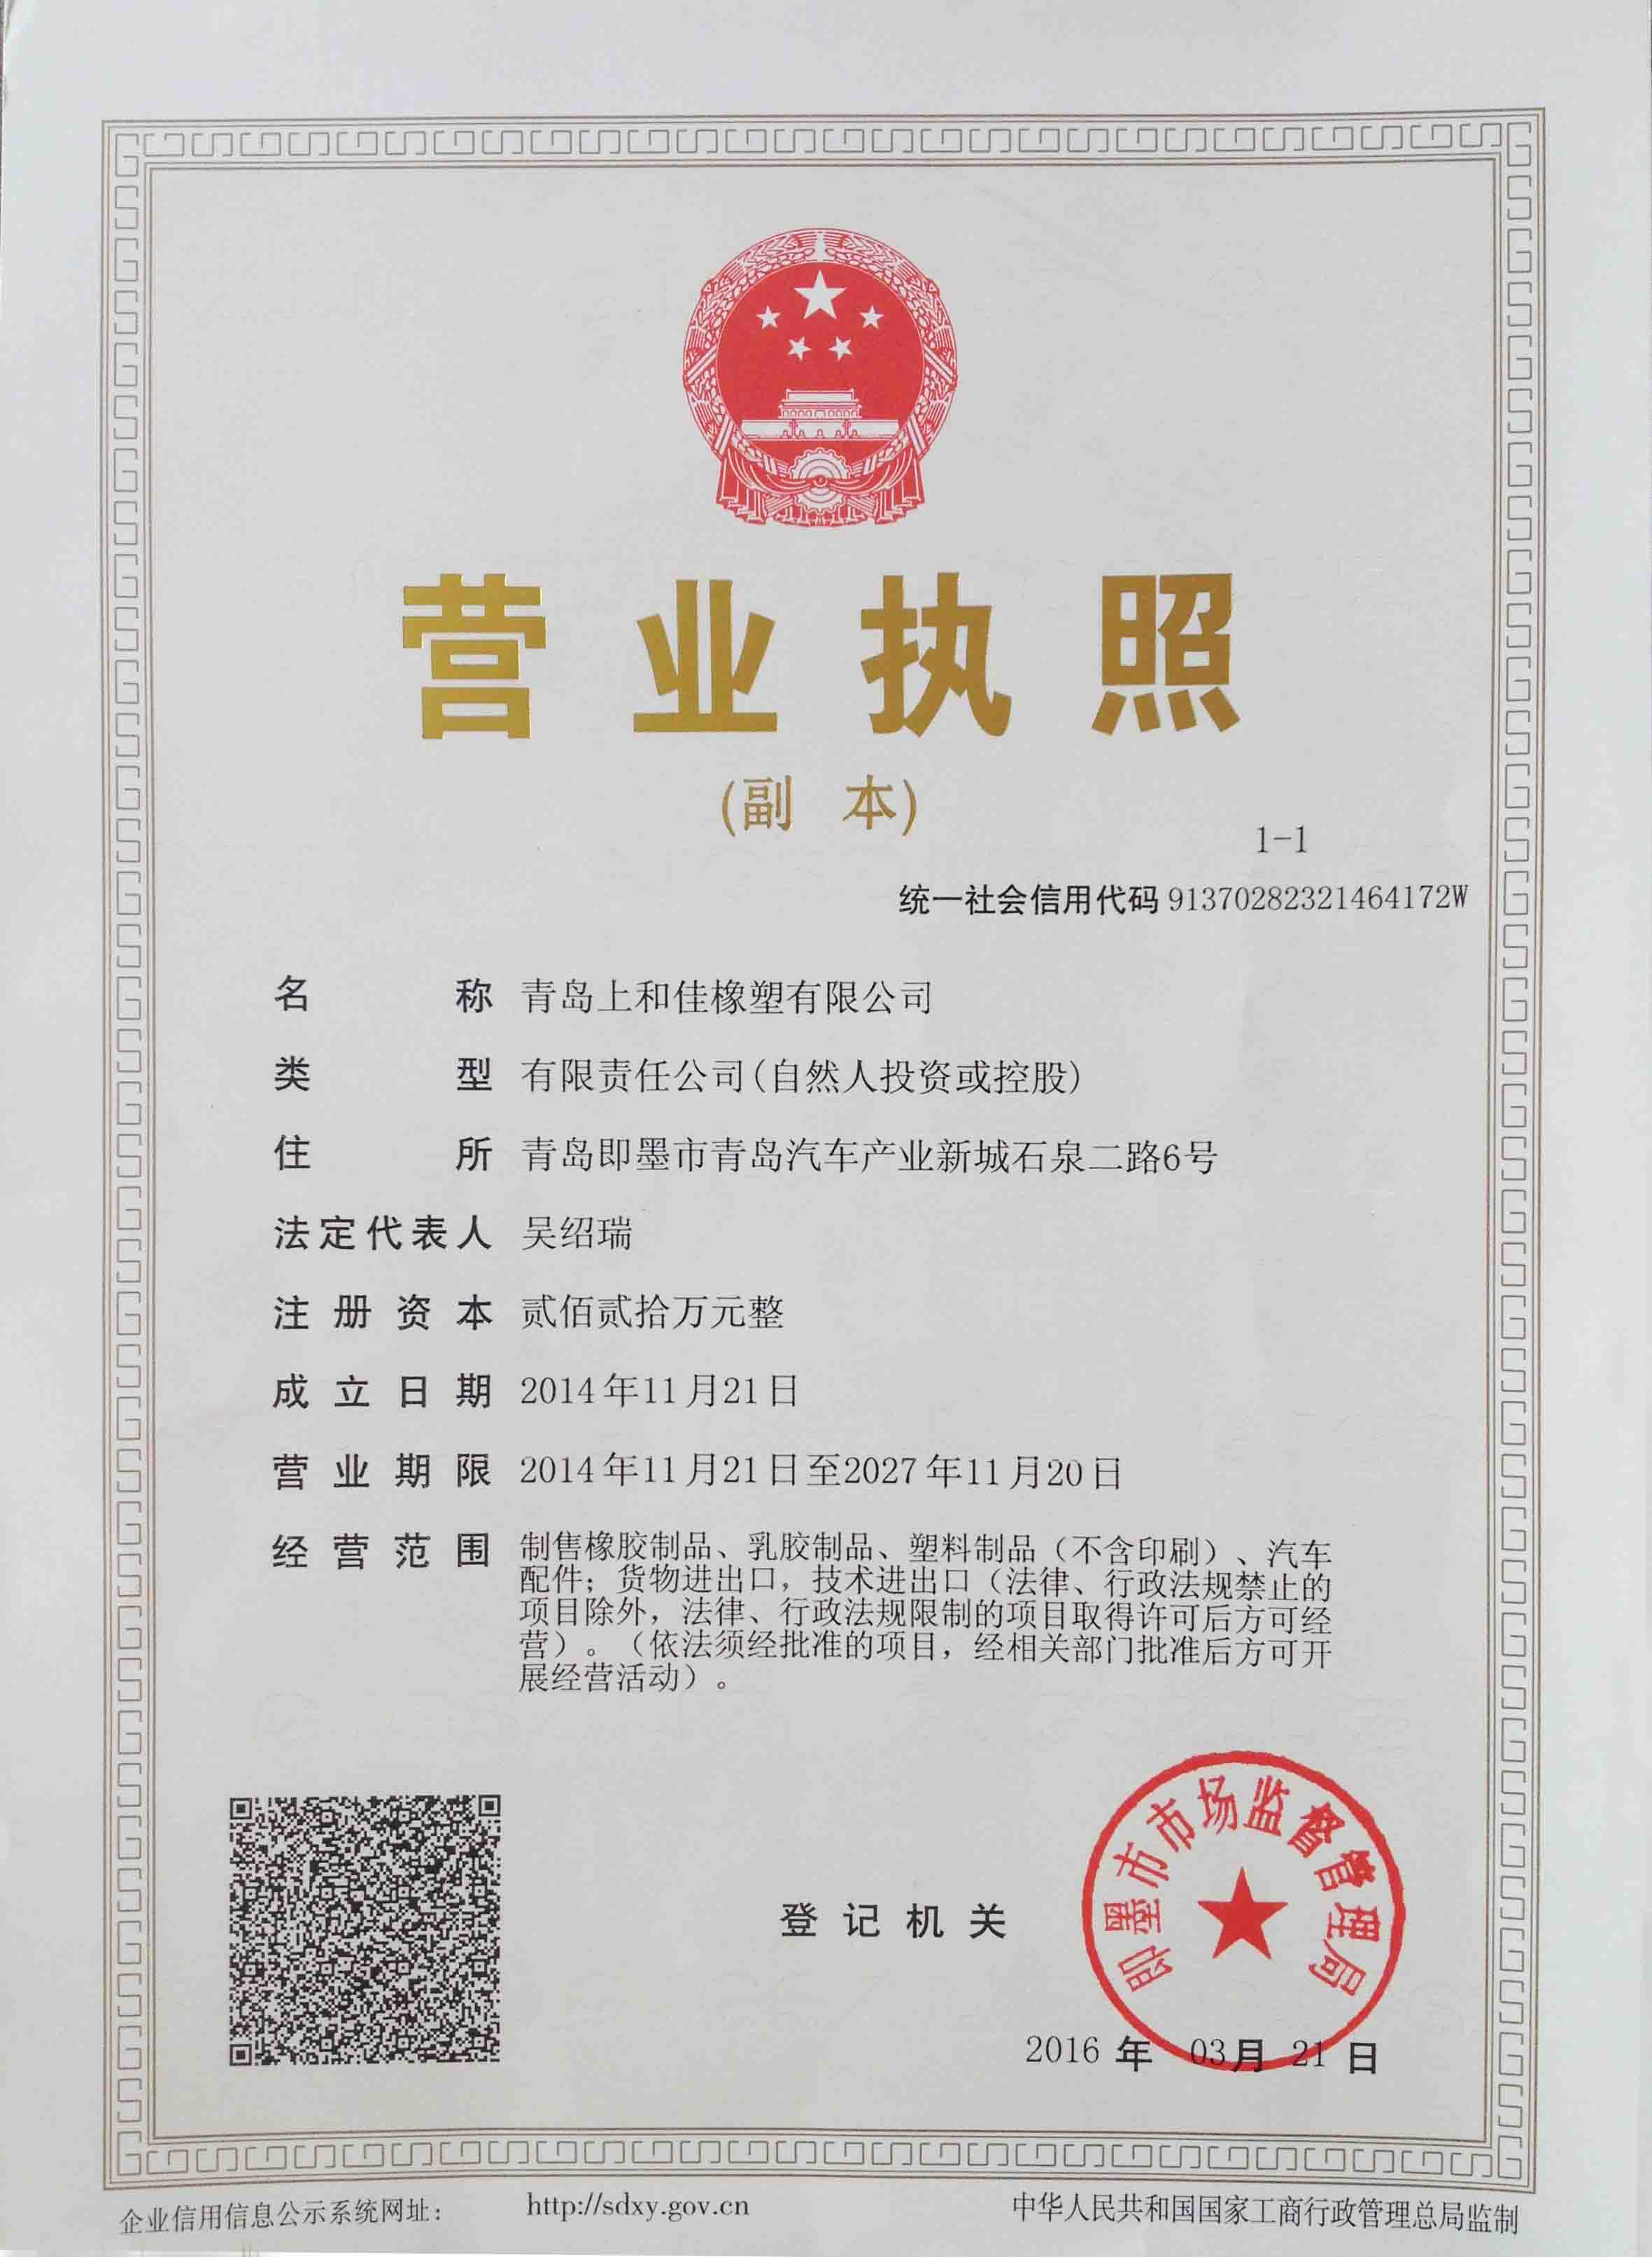 Business license for our company.